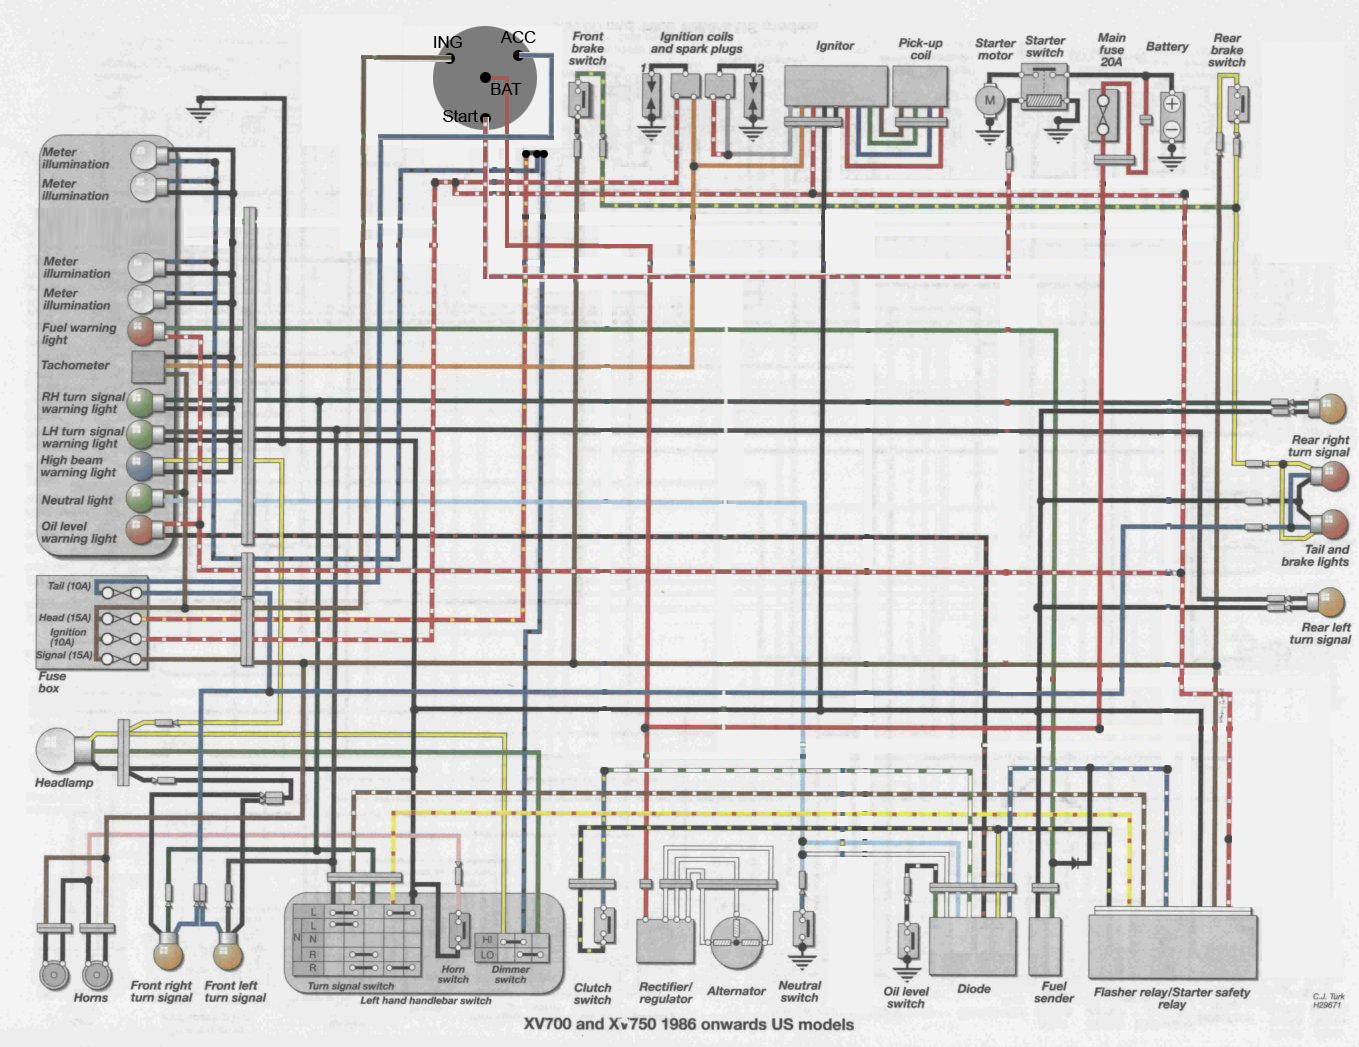 Yamaha 535 Wiring Diagram - All Wiring Diagram